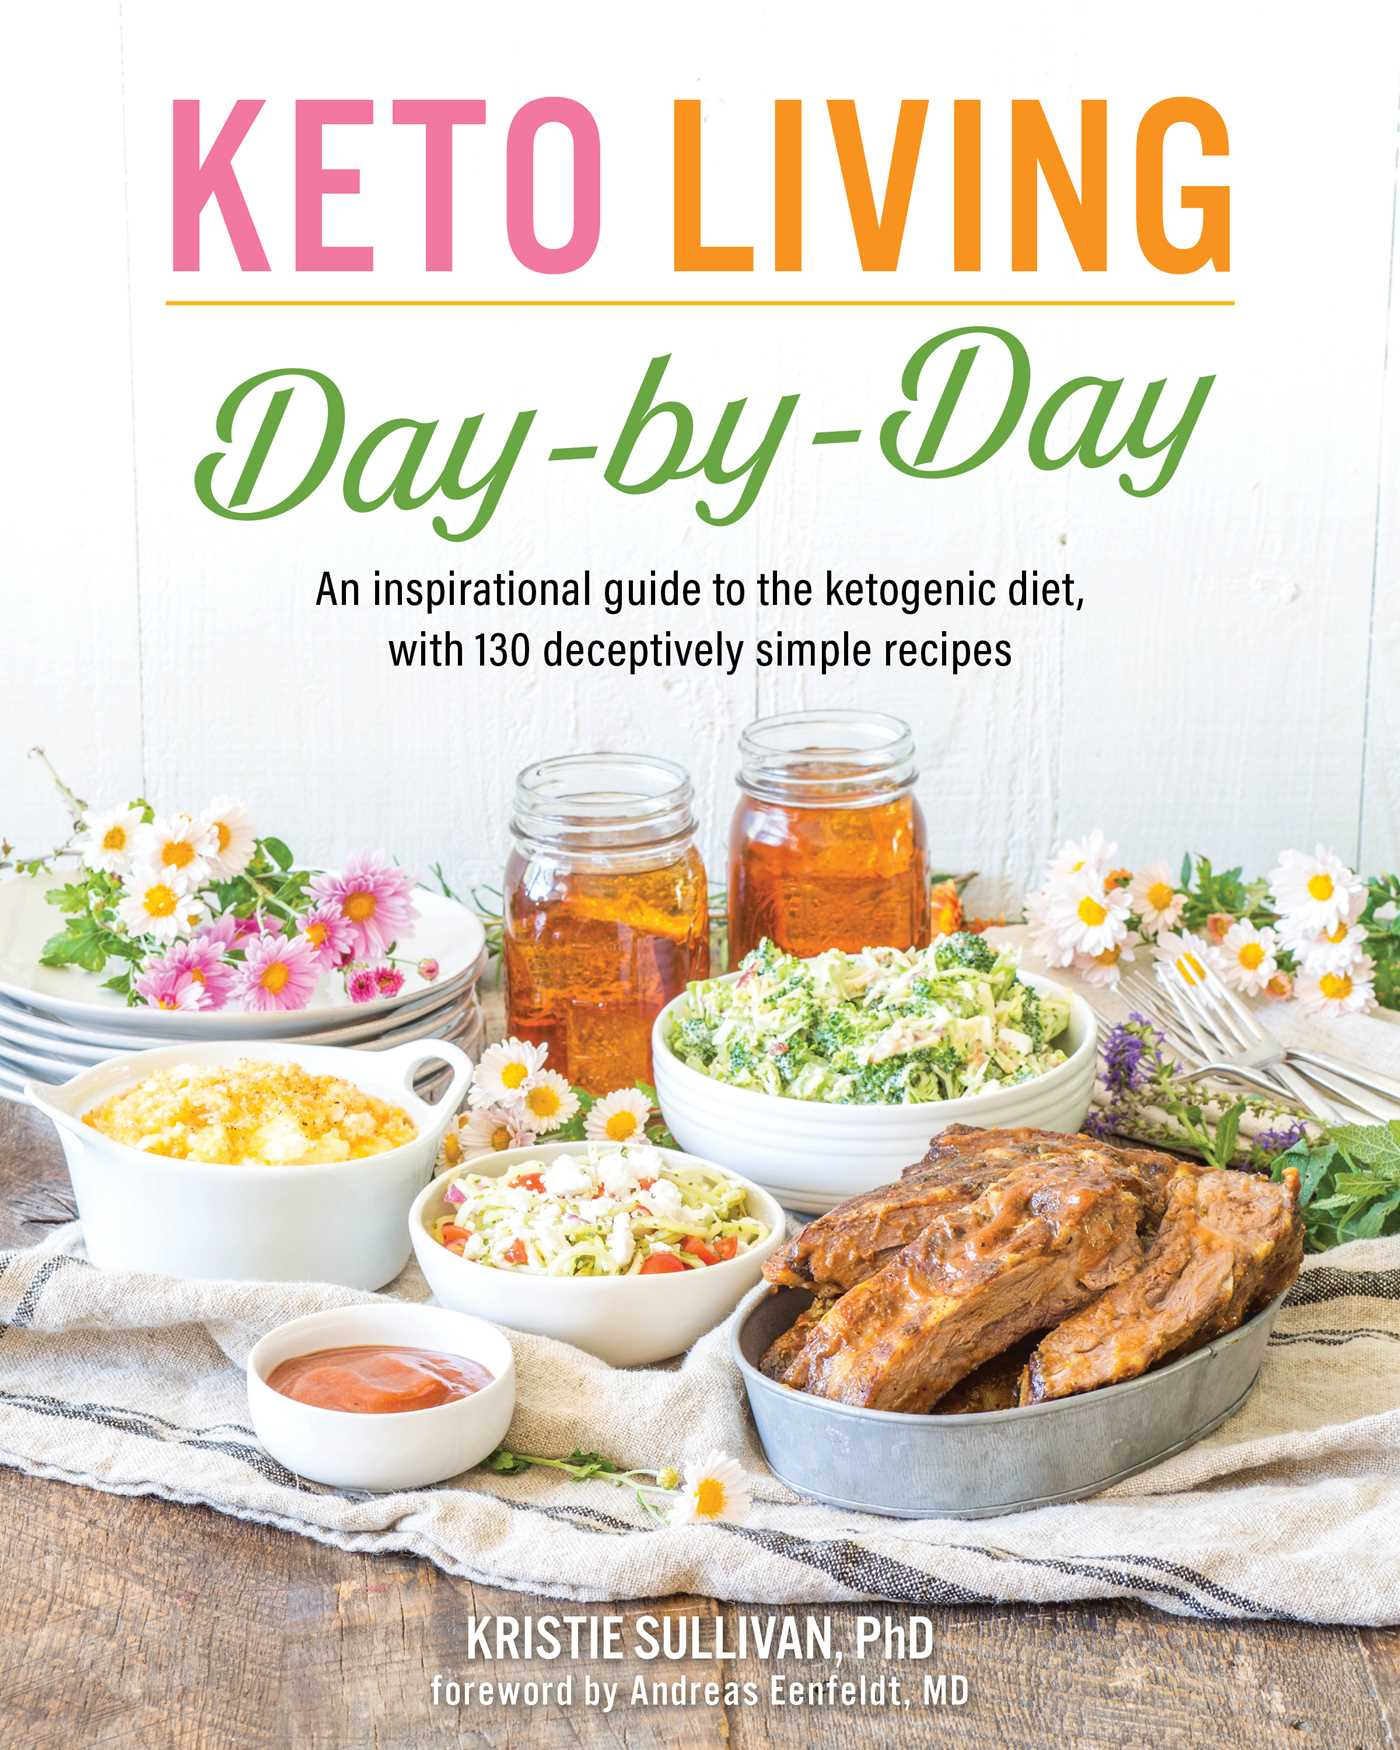 Keto living day by day book by kristie sullivan andreas eenfeldt keto living day by day 9781628602722 hr forumfinder Image collections